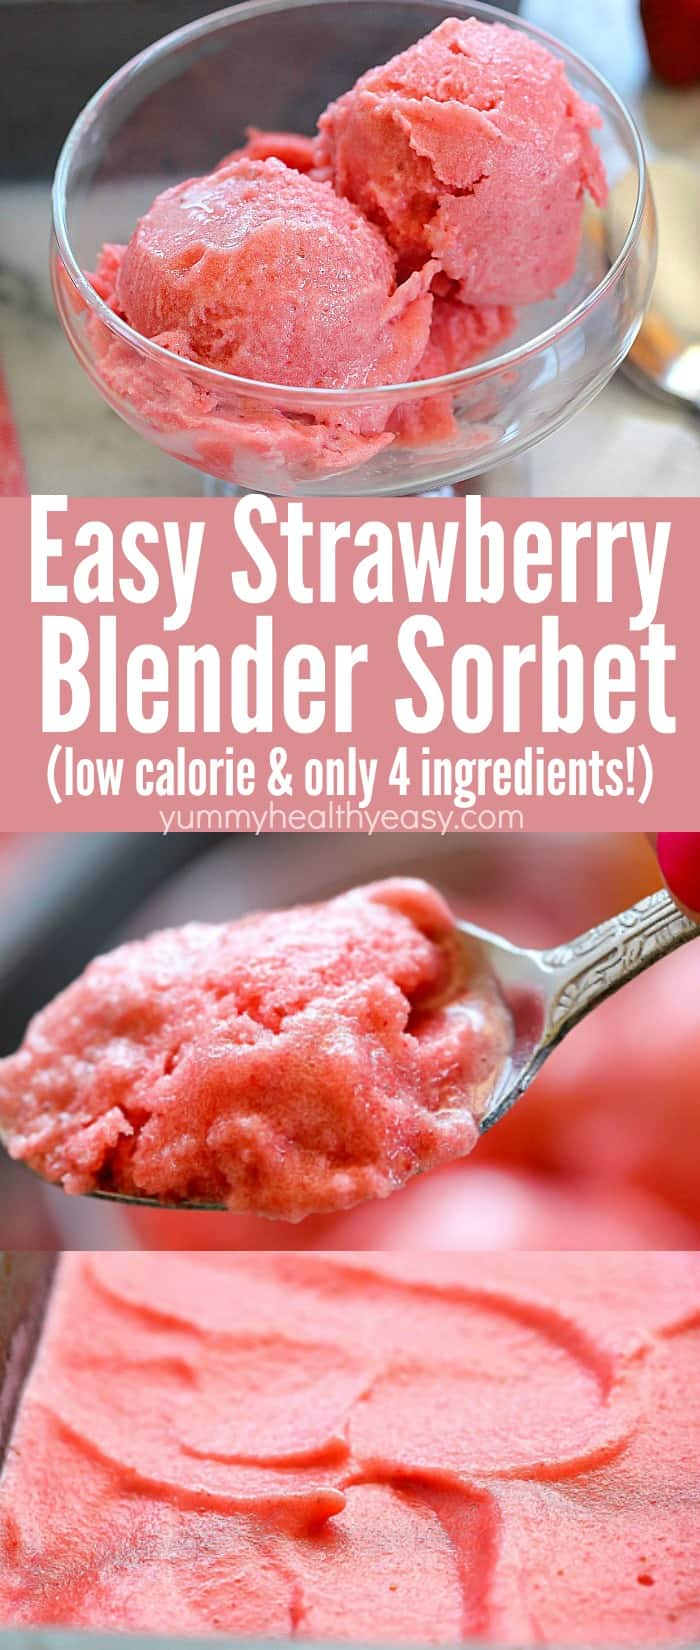 Get ready for a flavor explosion when you try this Easy Strawberry Sorbet Recipe! Only a few ingredients and a blender needed for this delicious, healthier summertime treat -only 21 calories per serving! #AD